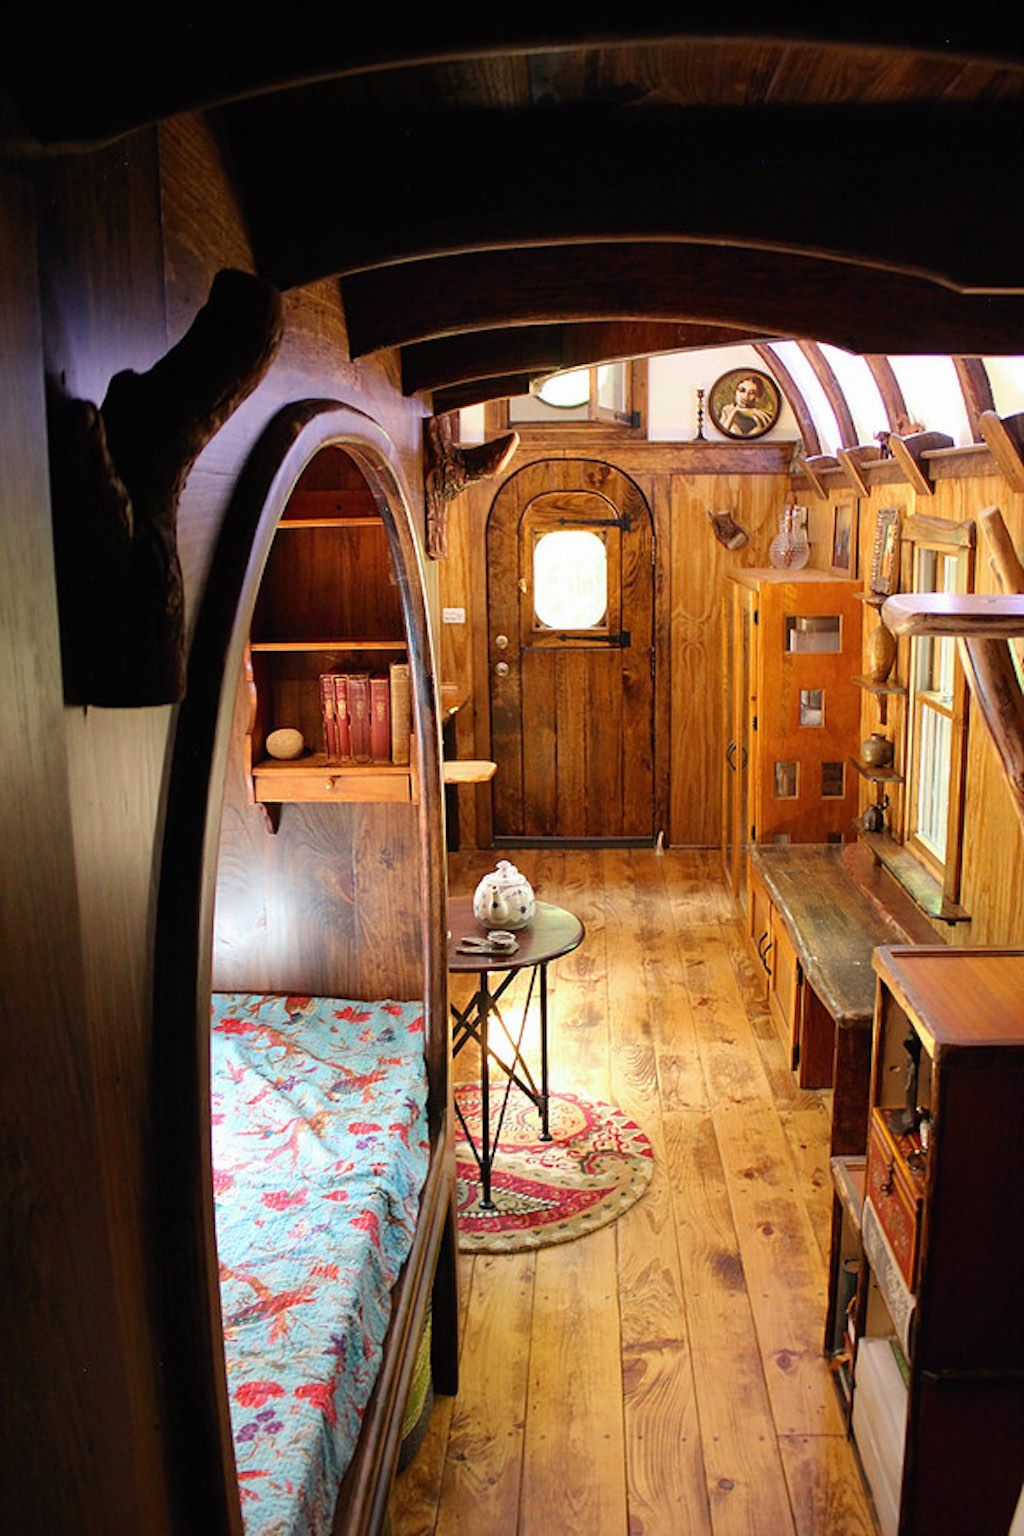 A 204 square feet tiny house with hand carved interior woodwork throughout in kerhonkson new york built by the unkown craftsman